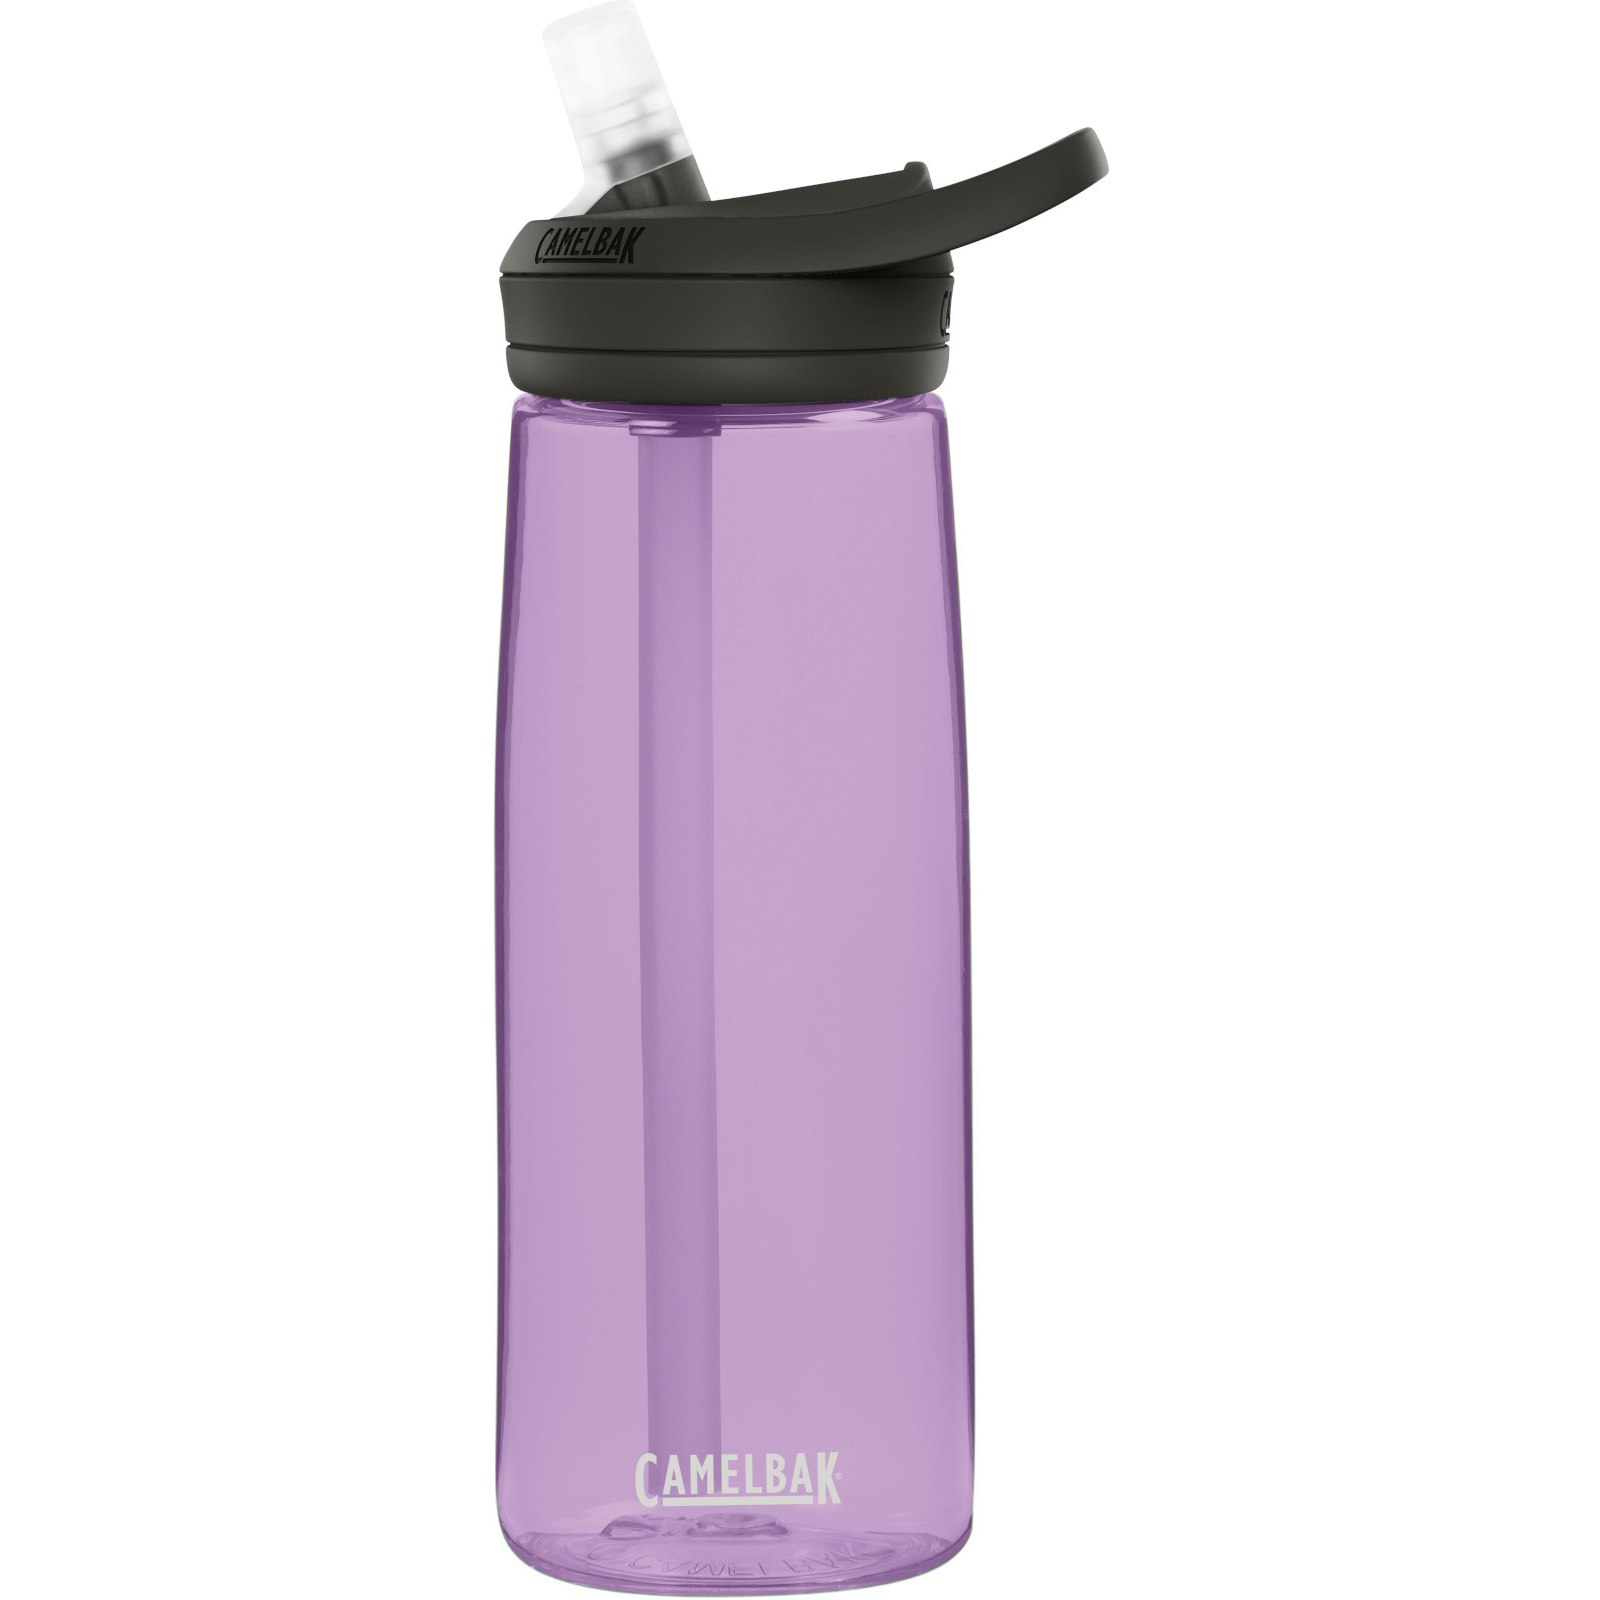 Eddy+ 750ml Dusty Lavender